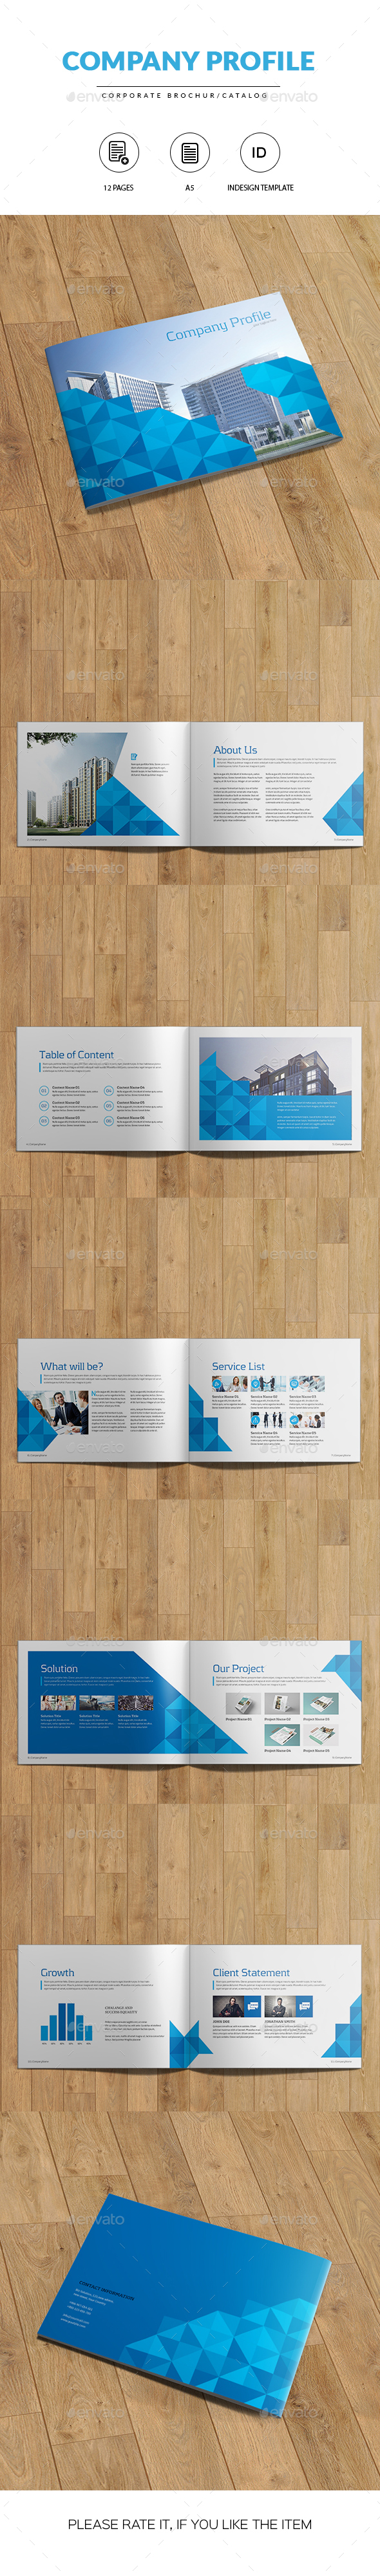 A5 Corporate Brochure/Catalog | Indesign Template - Catalogs Brochures